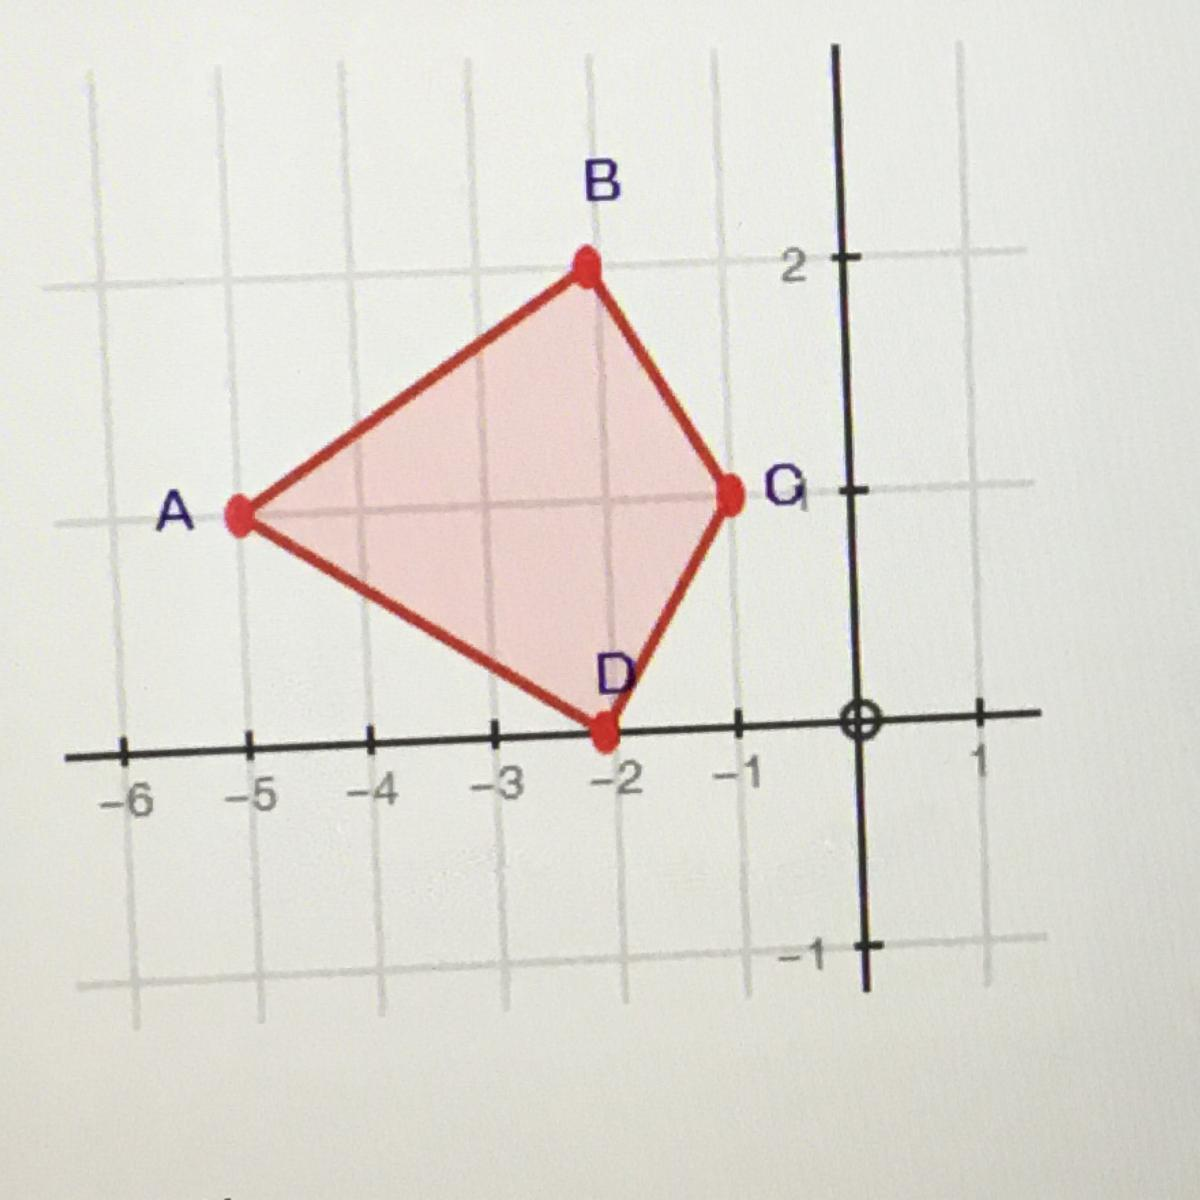 Kite ABCD Is Rotated 180° Clockwise About The Origin And